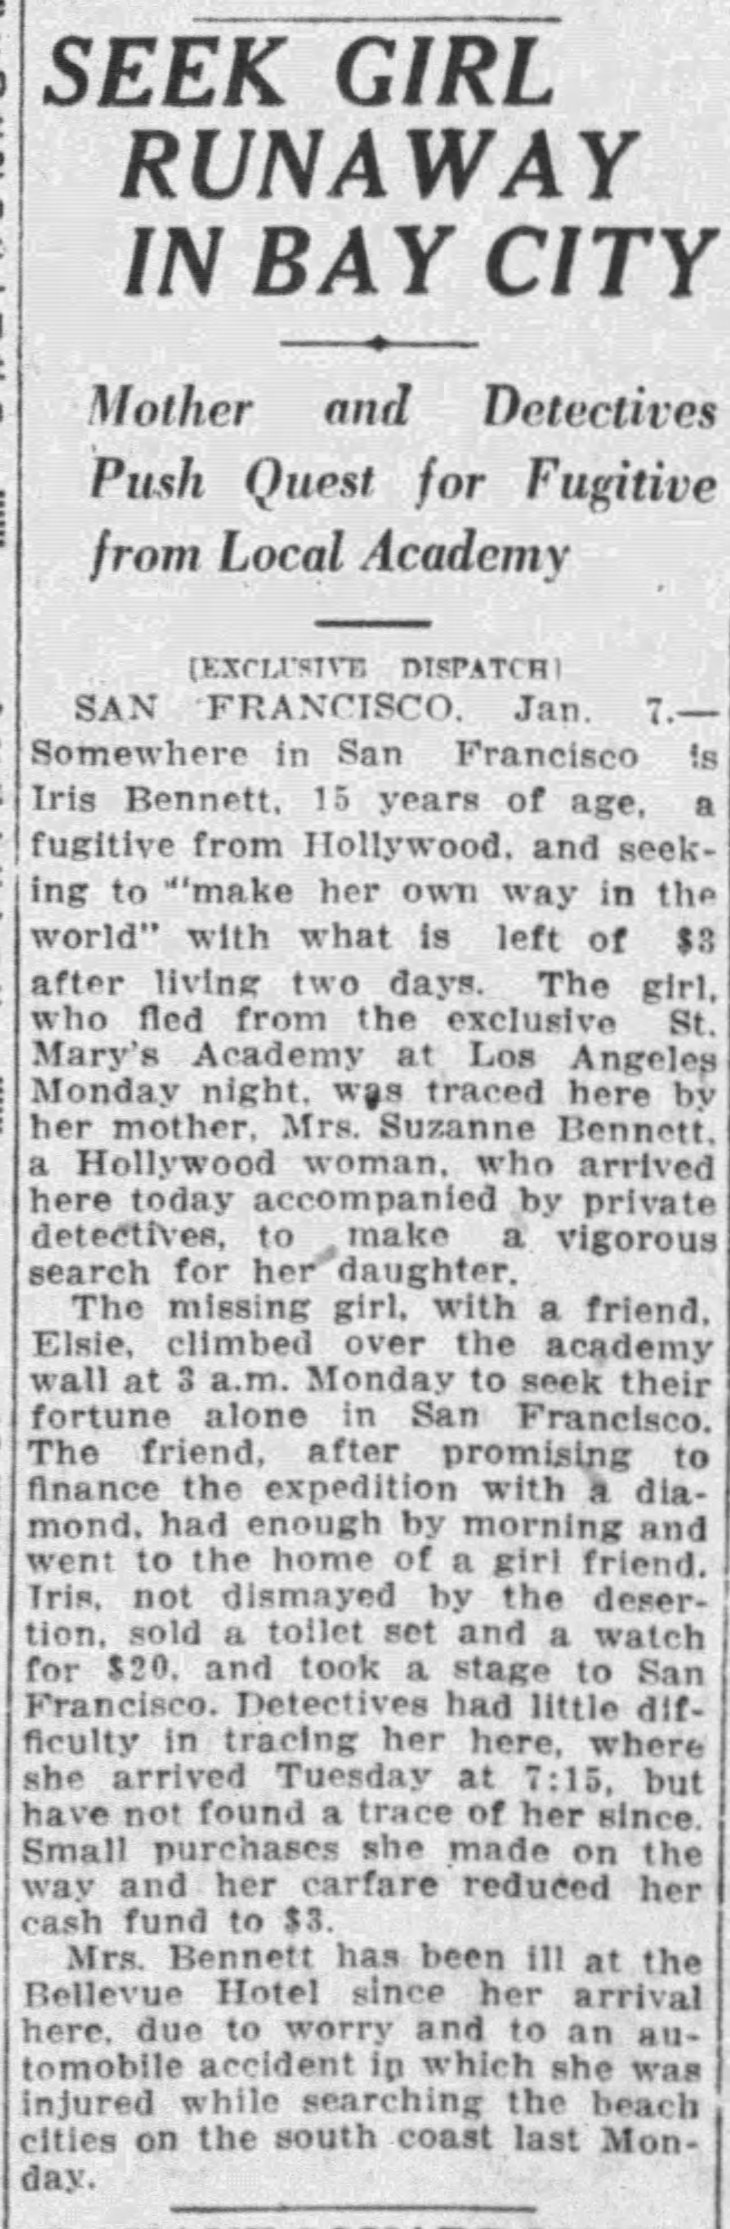 st. marys academy escapee times_jan_8__1925_